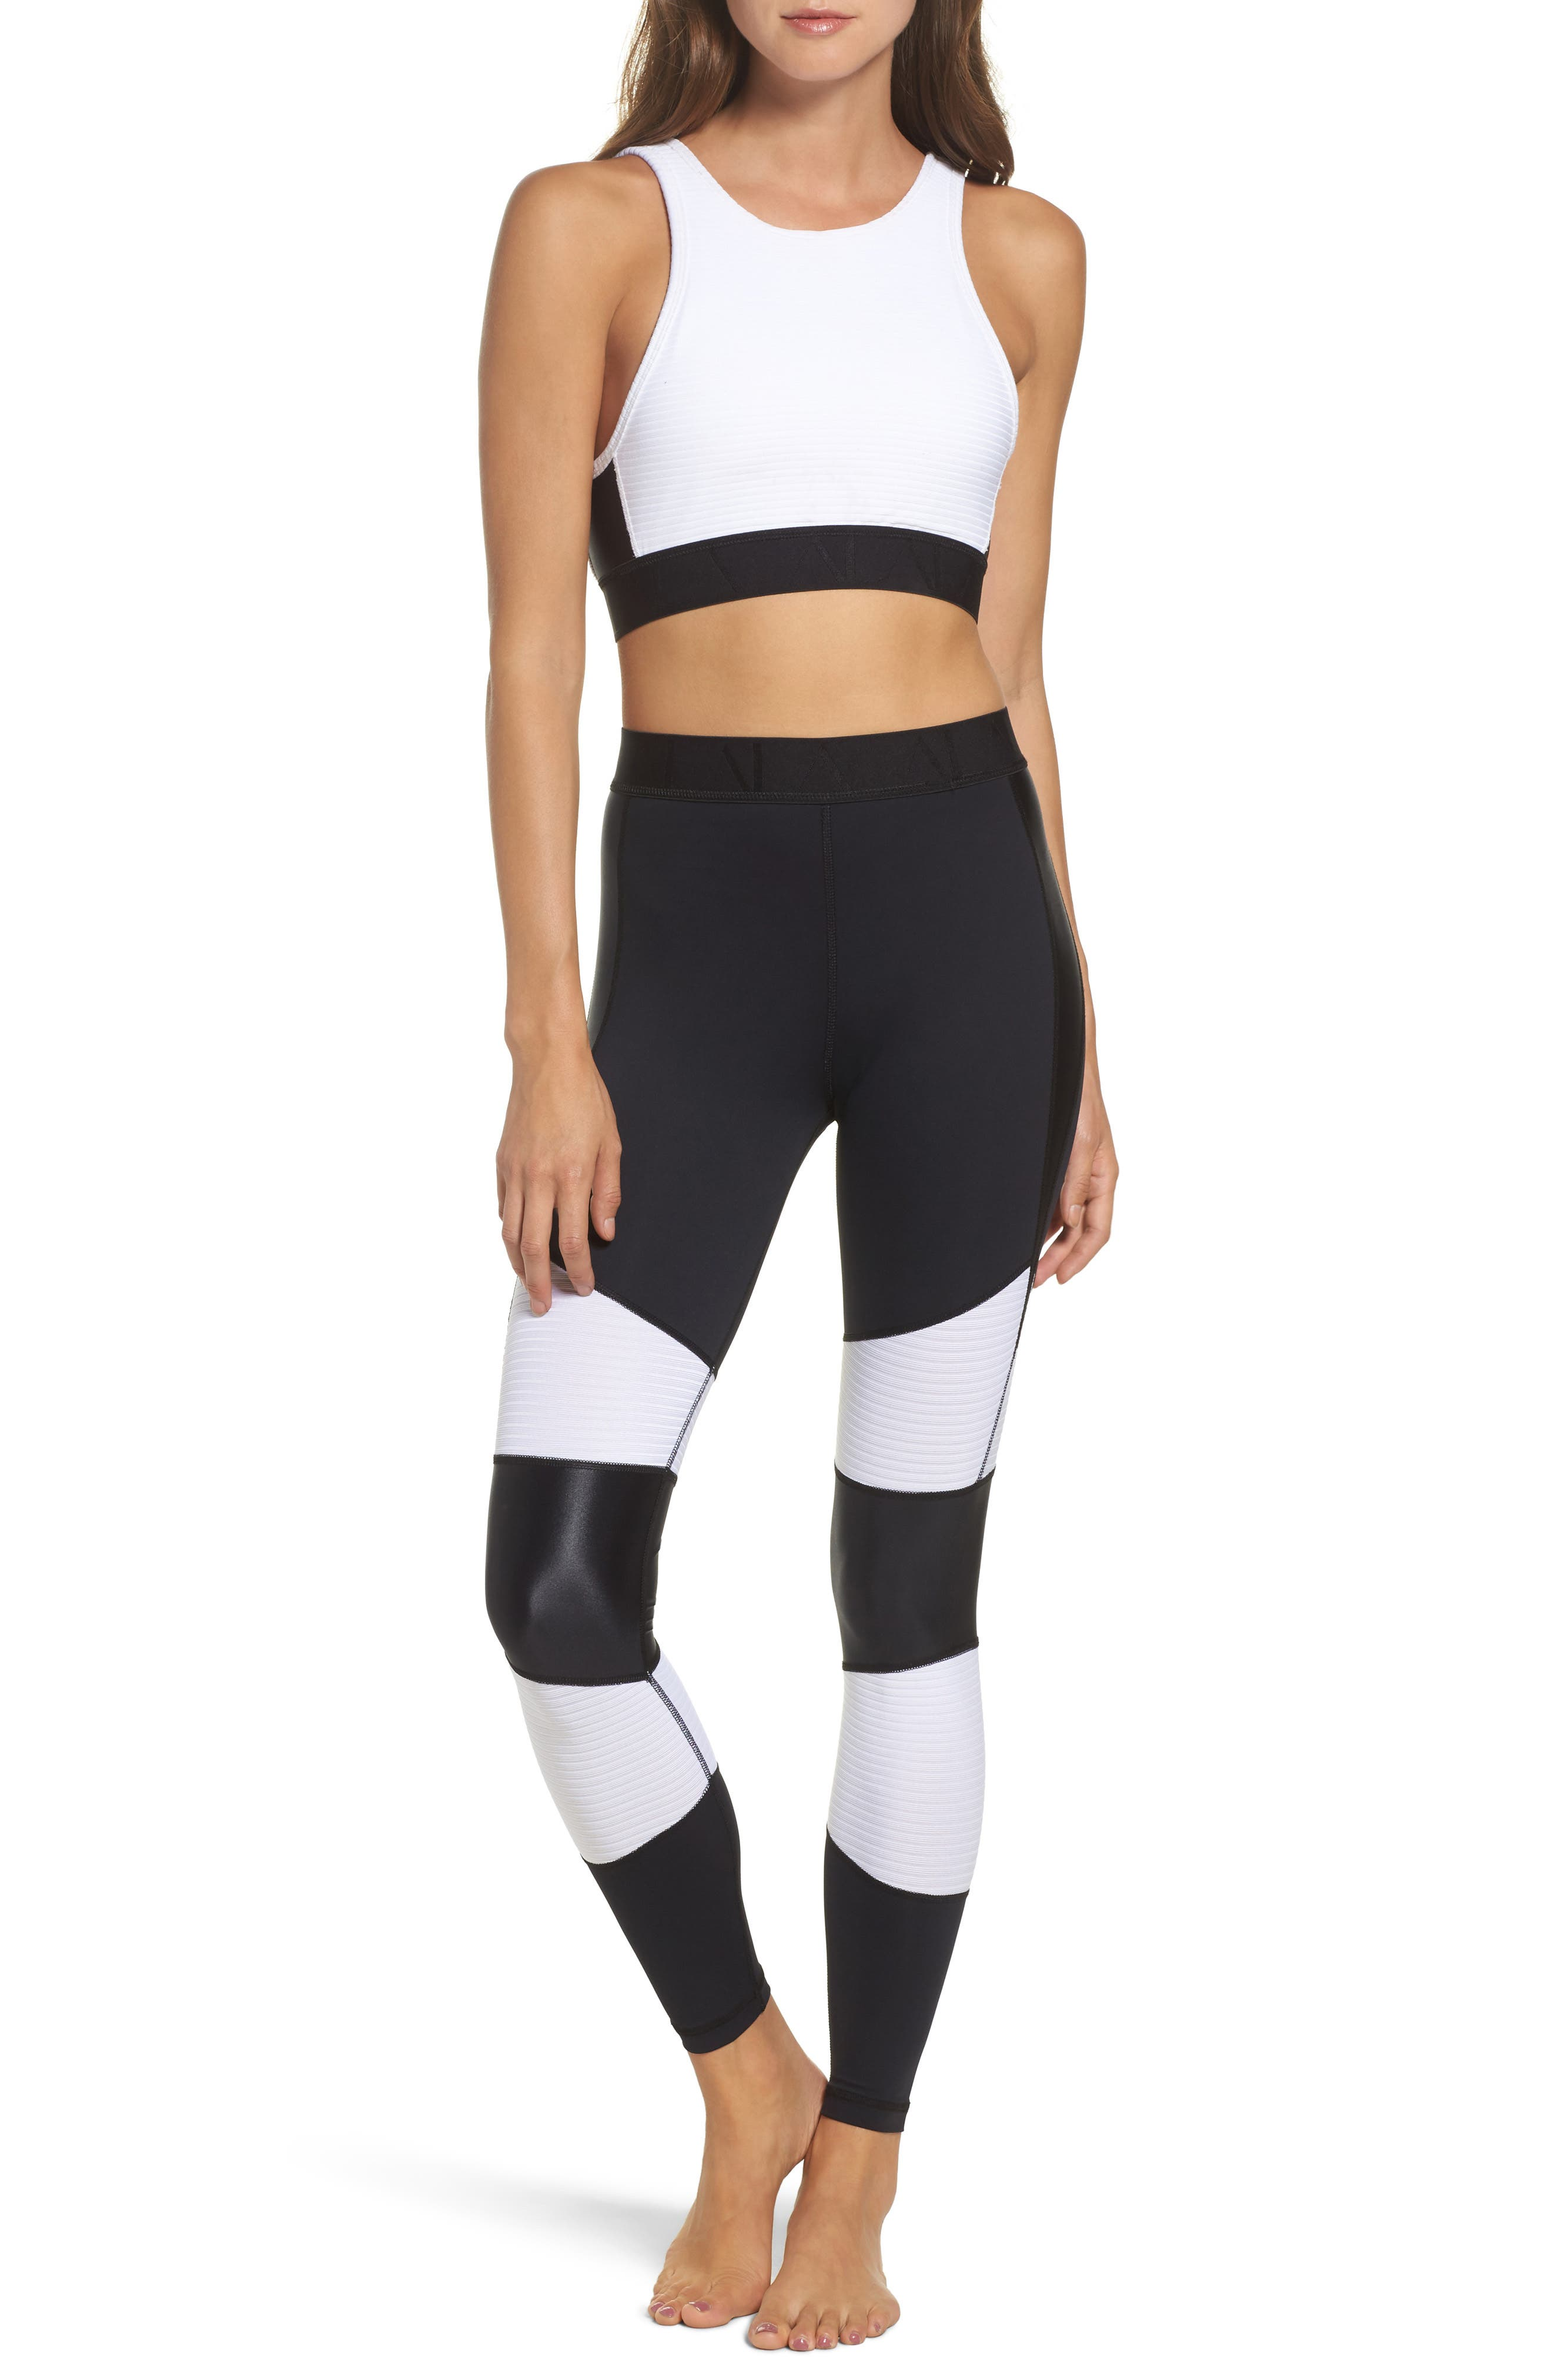 Harley Tights,                             Alternate thumbnail 8, color,                             White